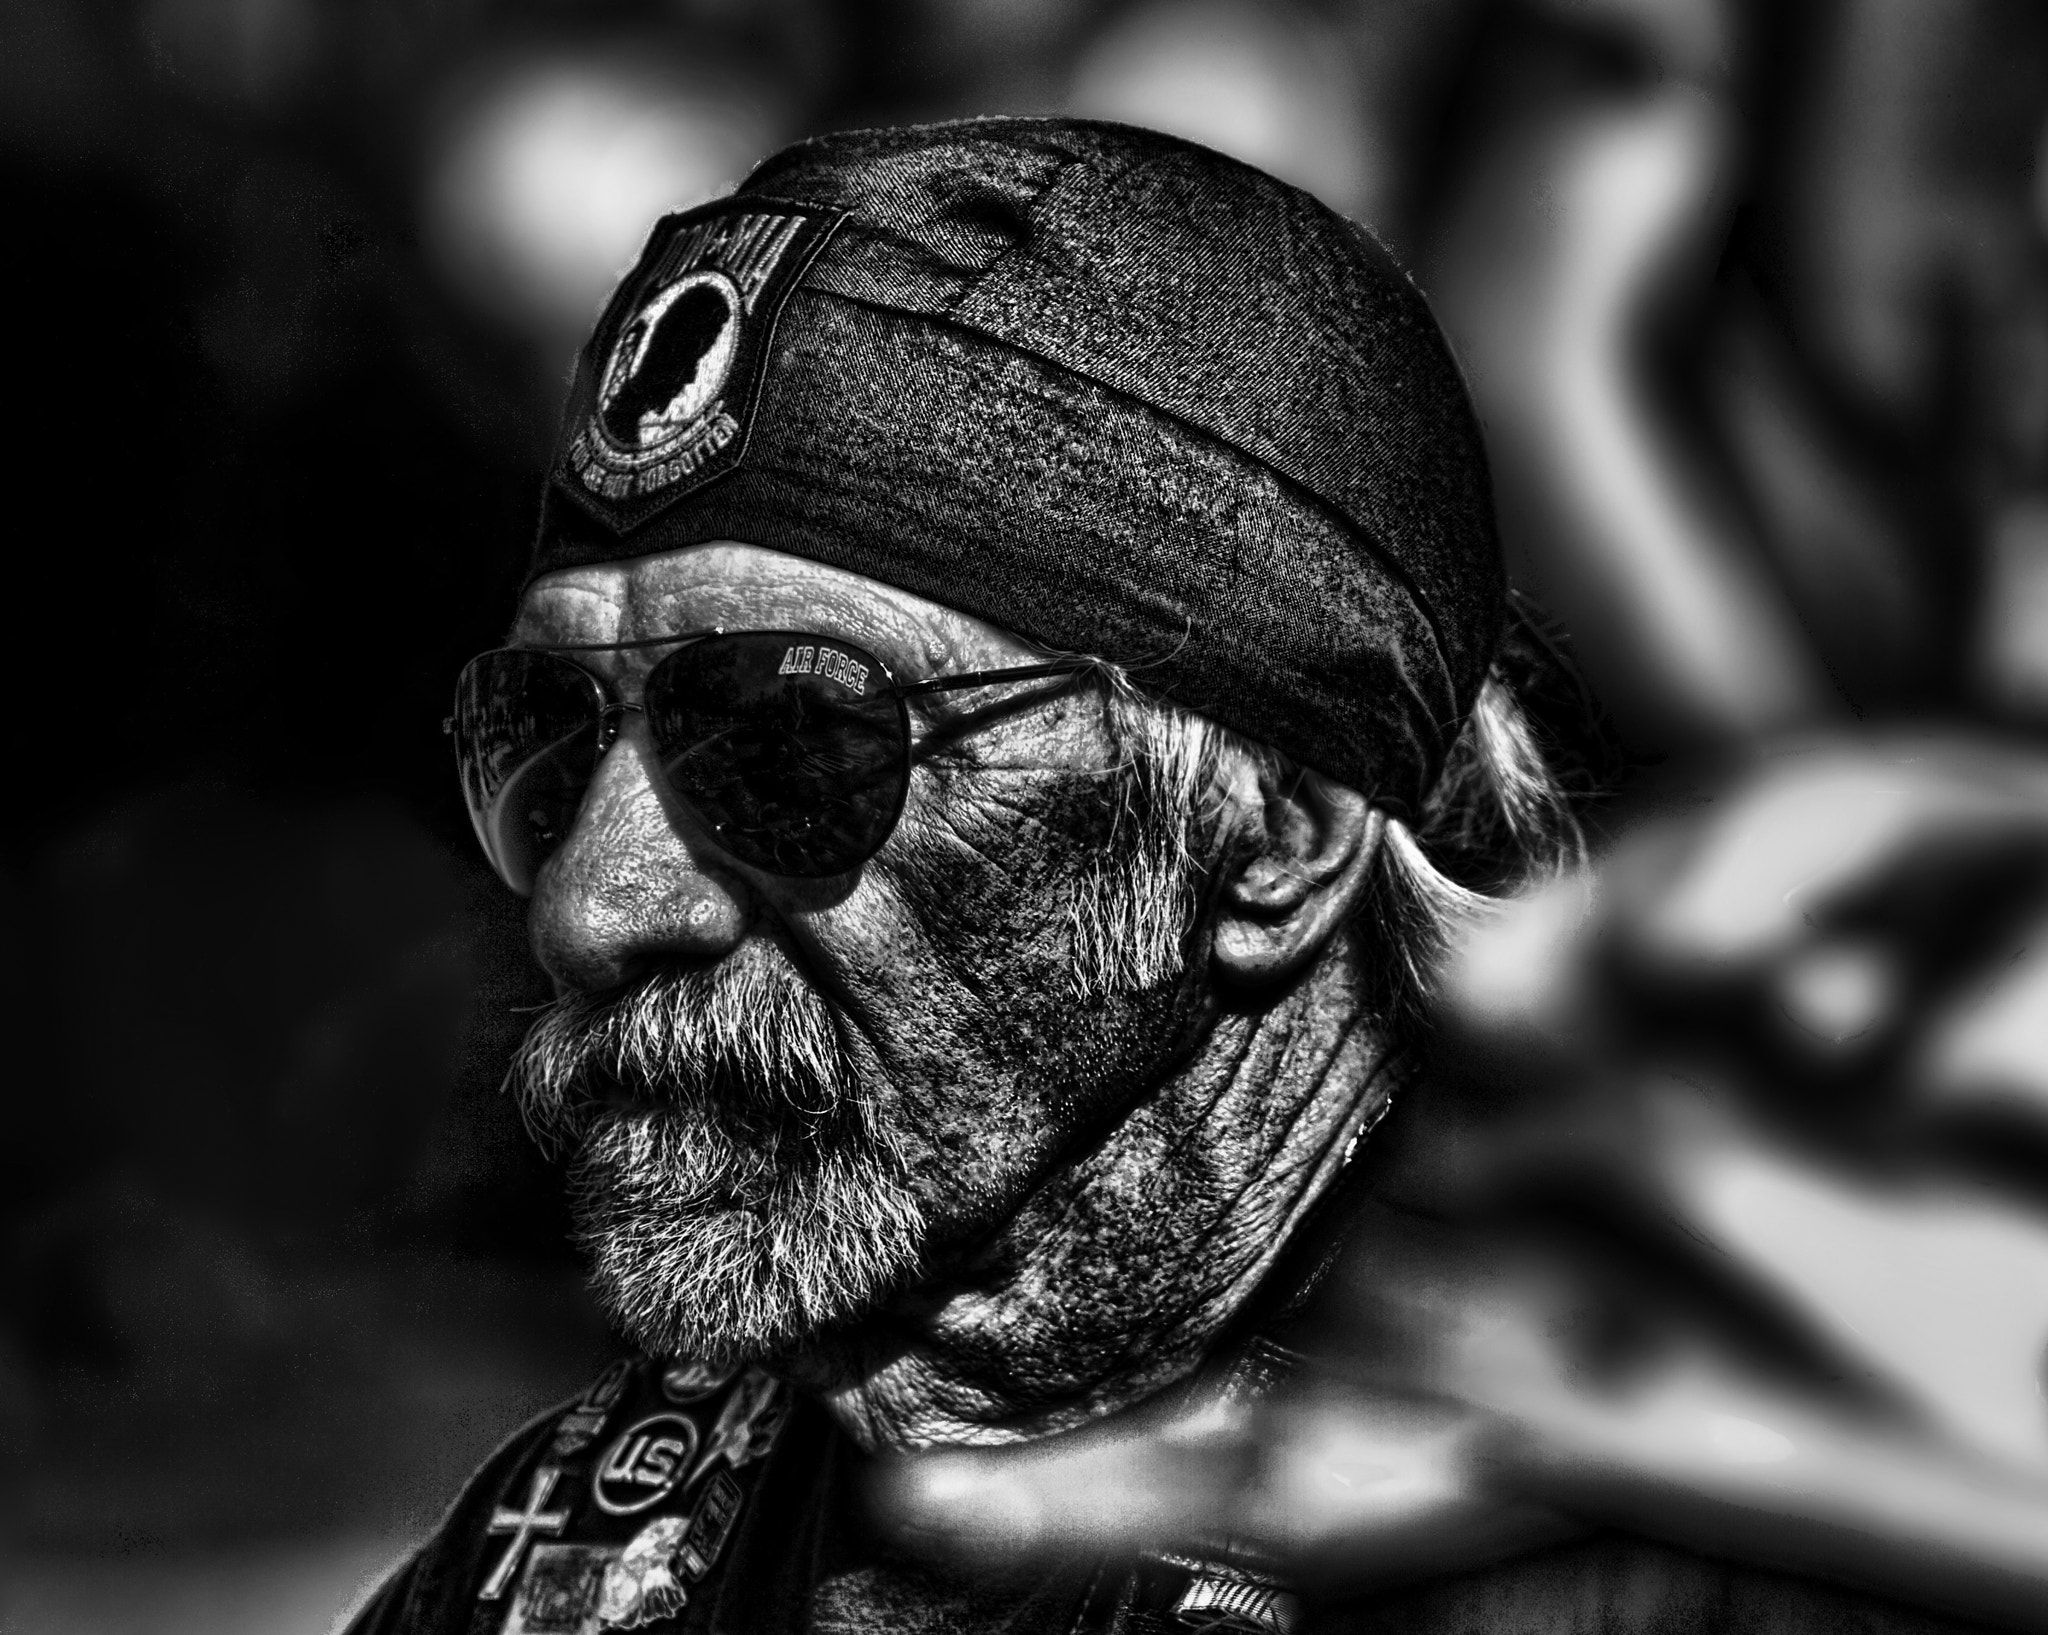 Photograph The Veteran by Daniel Lord on 500px